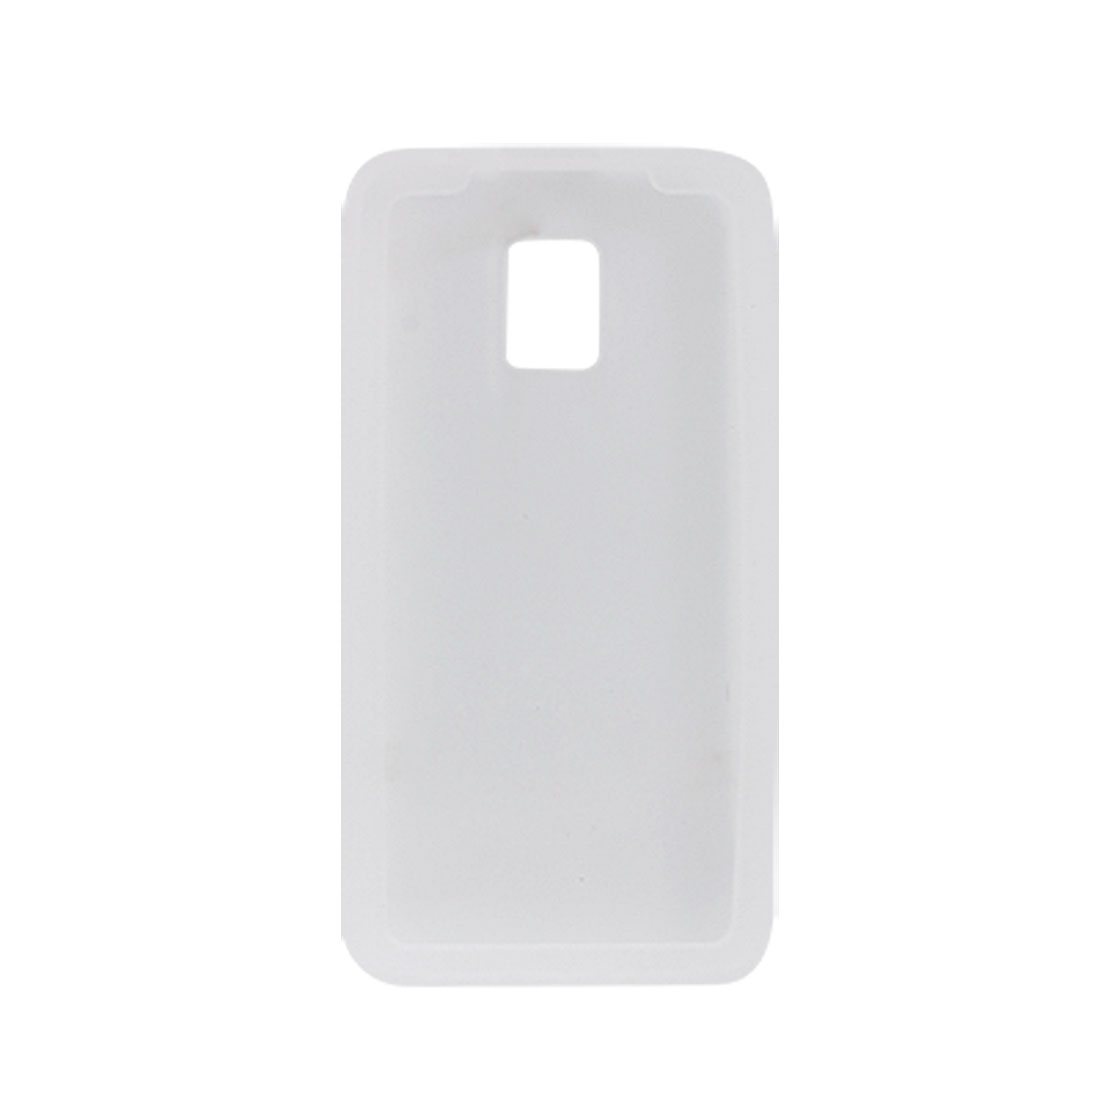 Surface Smooth Clear White Silicone Skin Soft Cover for LG Optimus 2X Star SU660